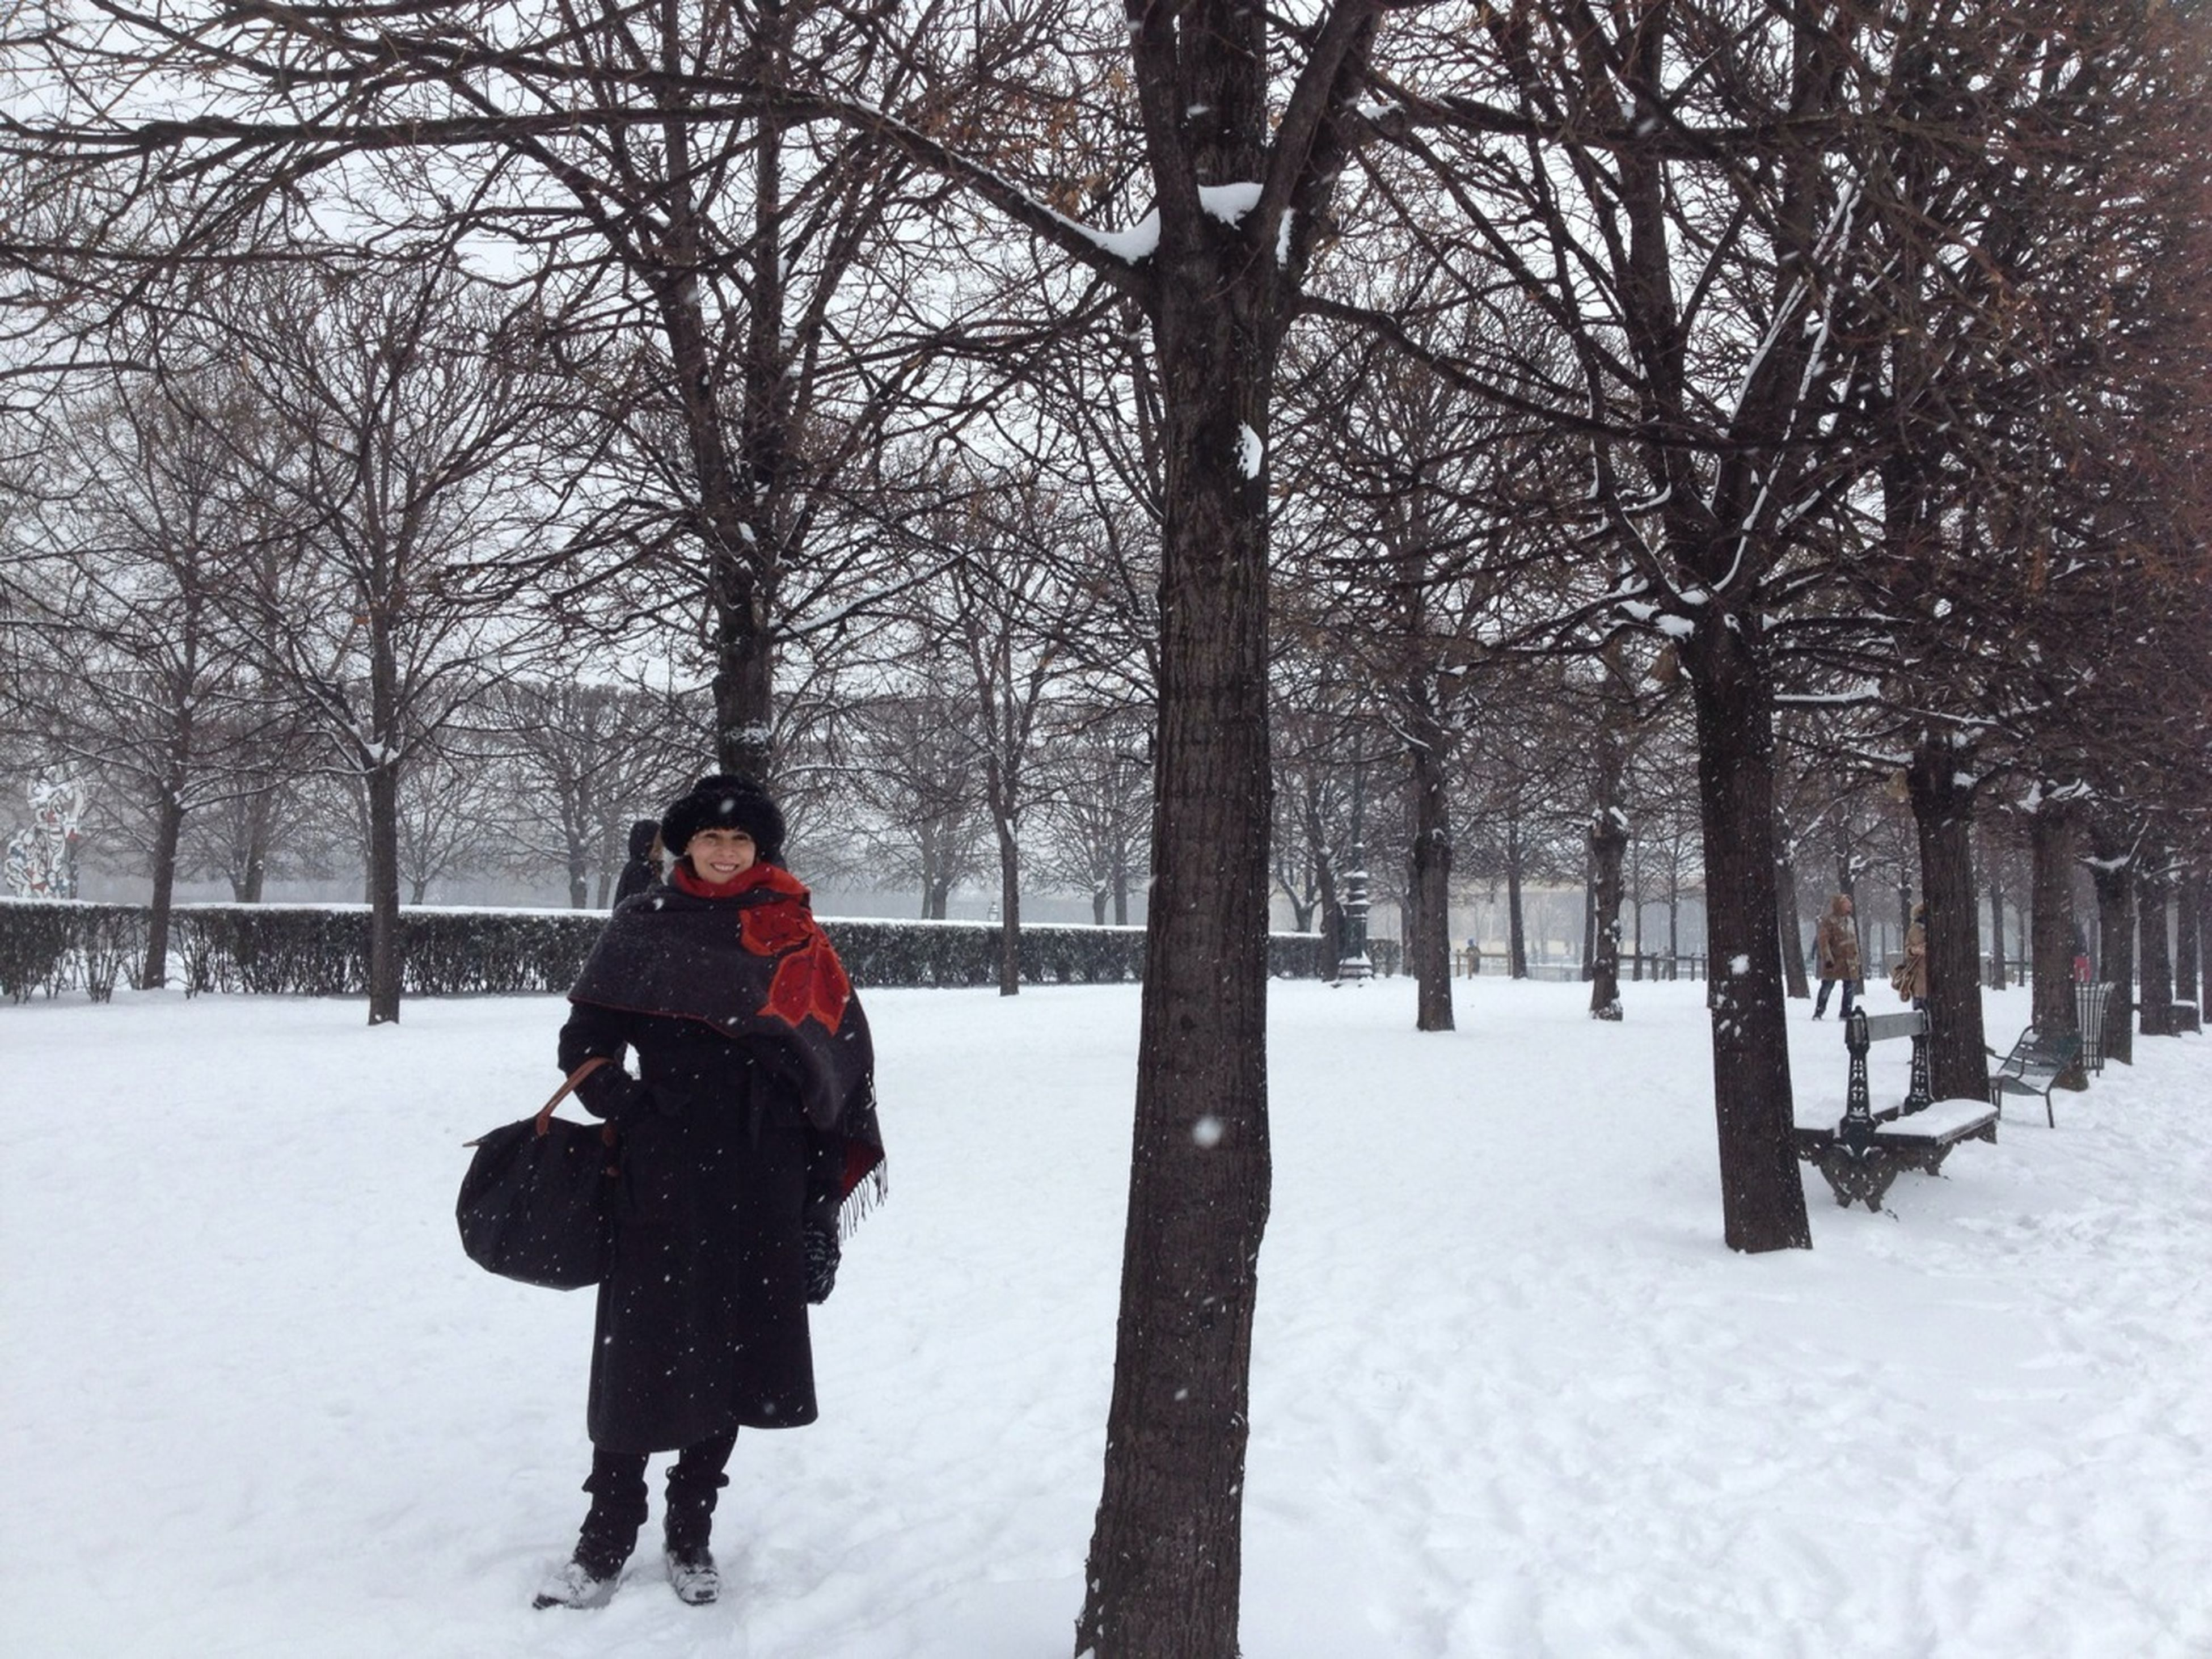 snow, winter, cold temperature, season, weather, warm clothing, tree, covering, bare tree, lifestyles, frozen, leisure activity, rear view, white color, full length, nature, covered, field